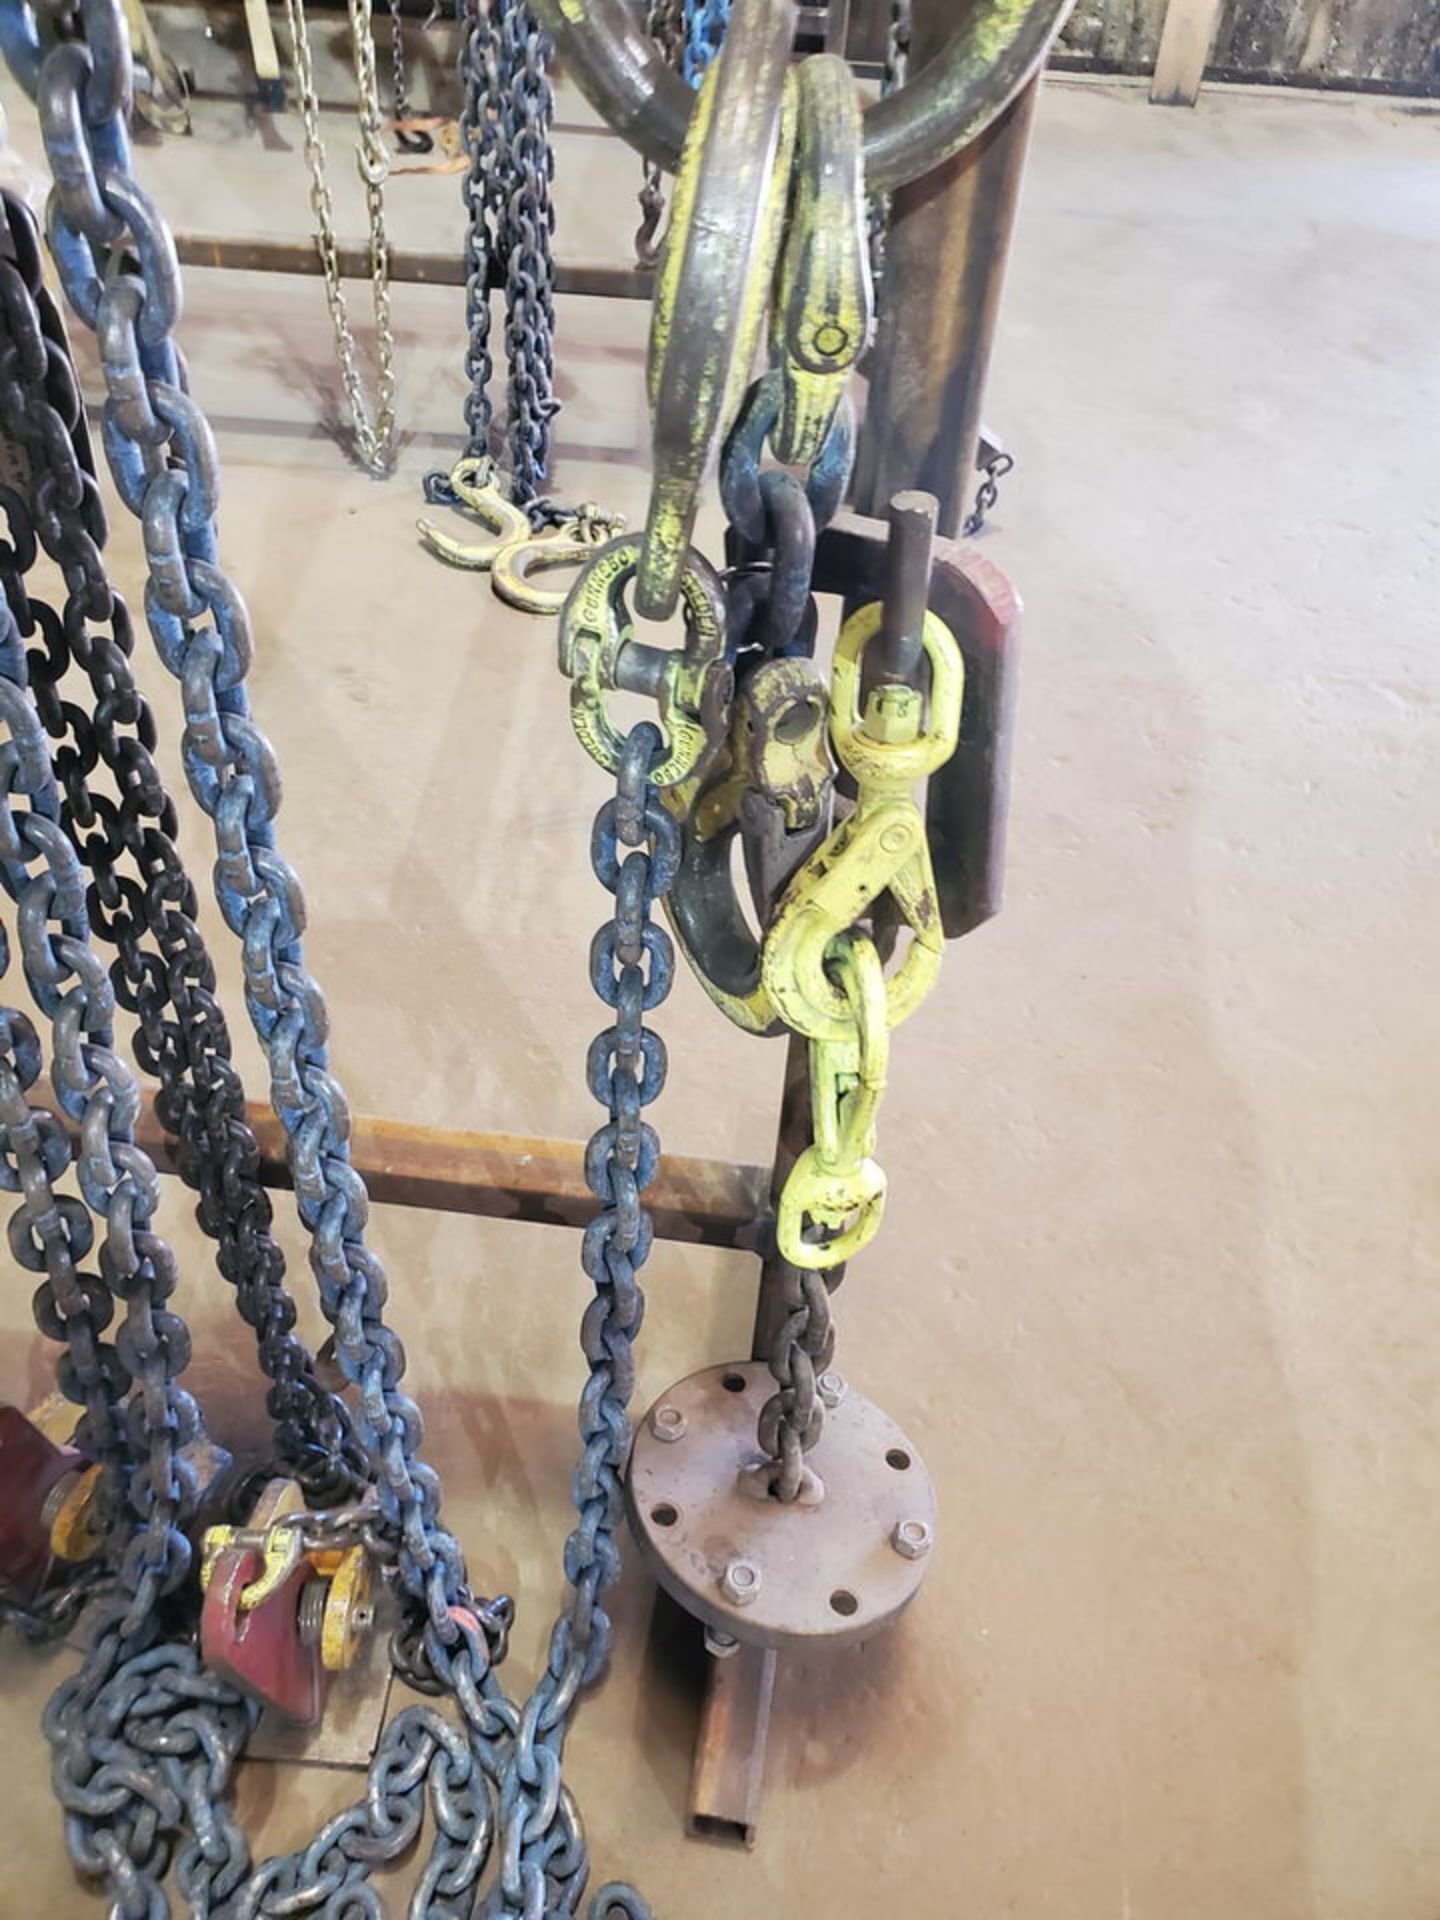 Assorted Lifting Chains & Straps W/ Rack 1 Ton & Other - Image 4 of 8